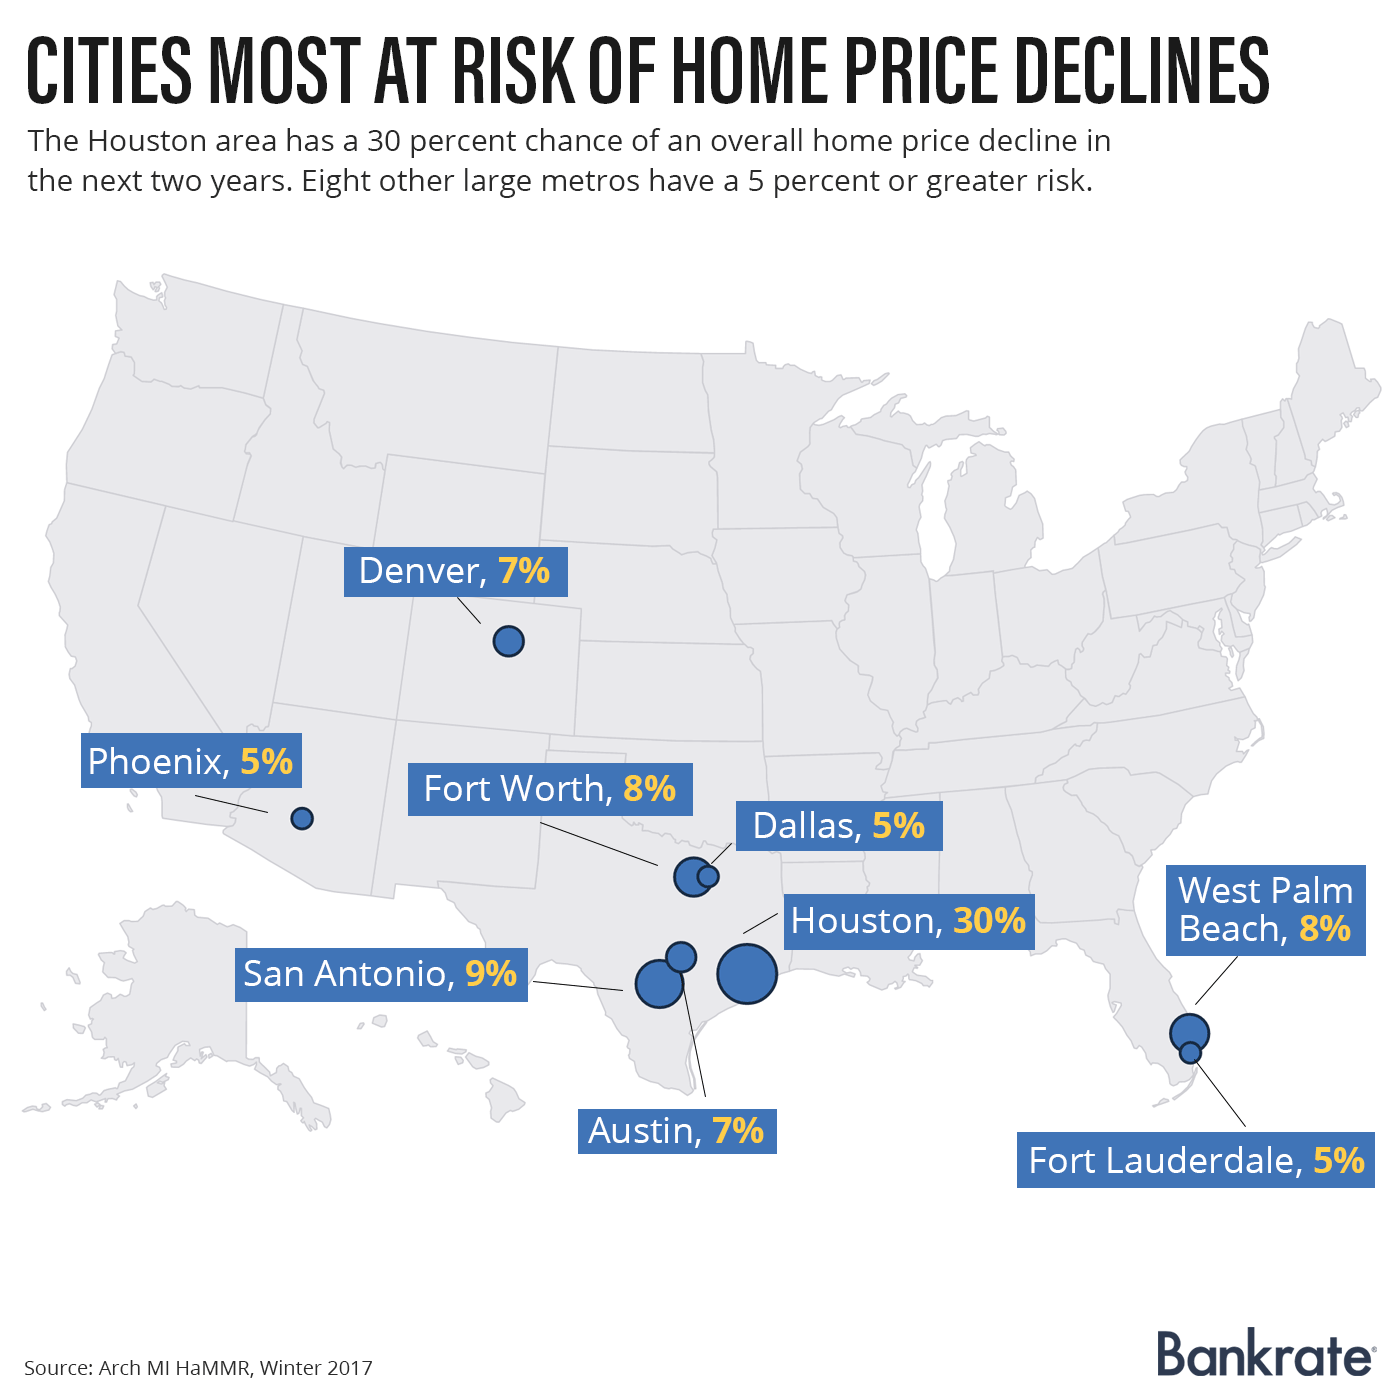 Cities most at risk of home prices discount | Bankrate